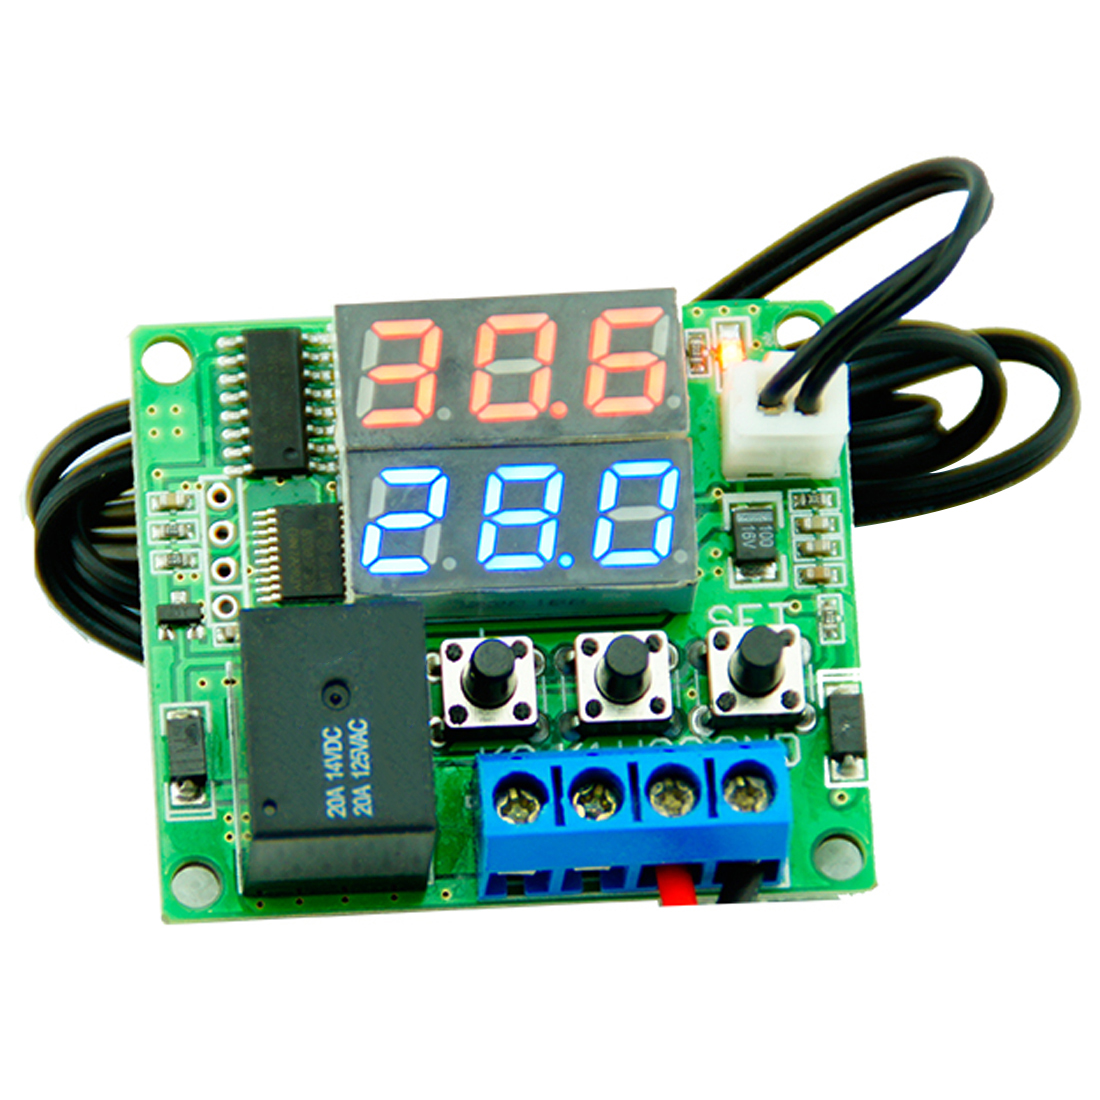 Regulator Switch Control DC 12V Dual LED Digital Display Thermostat Temperature Controller Relay NTC Sensor Module